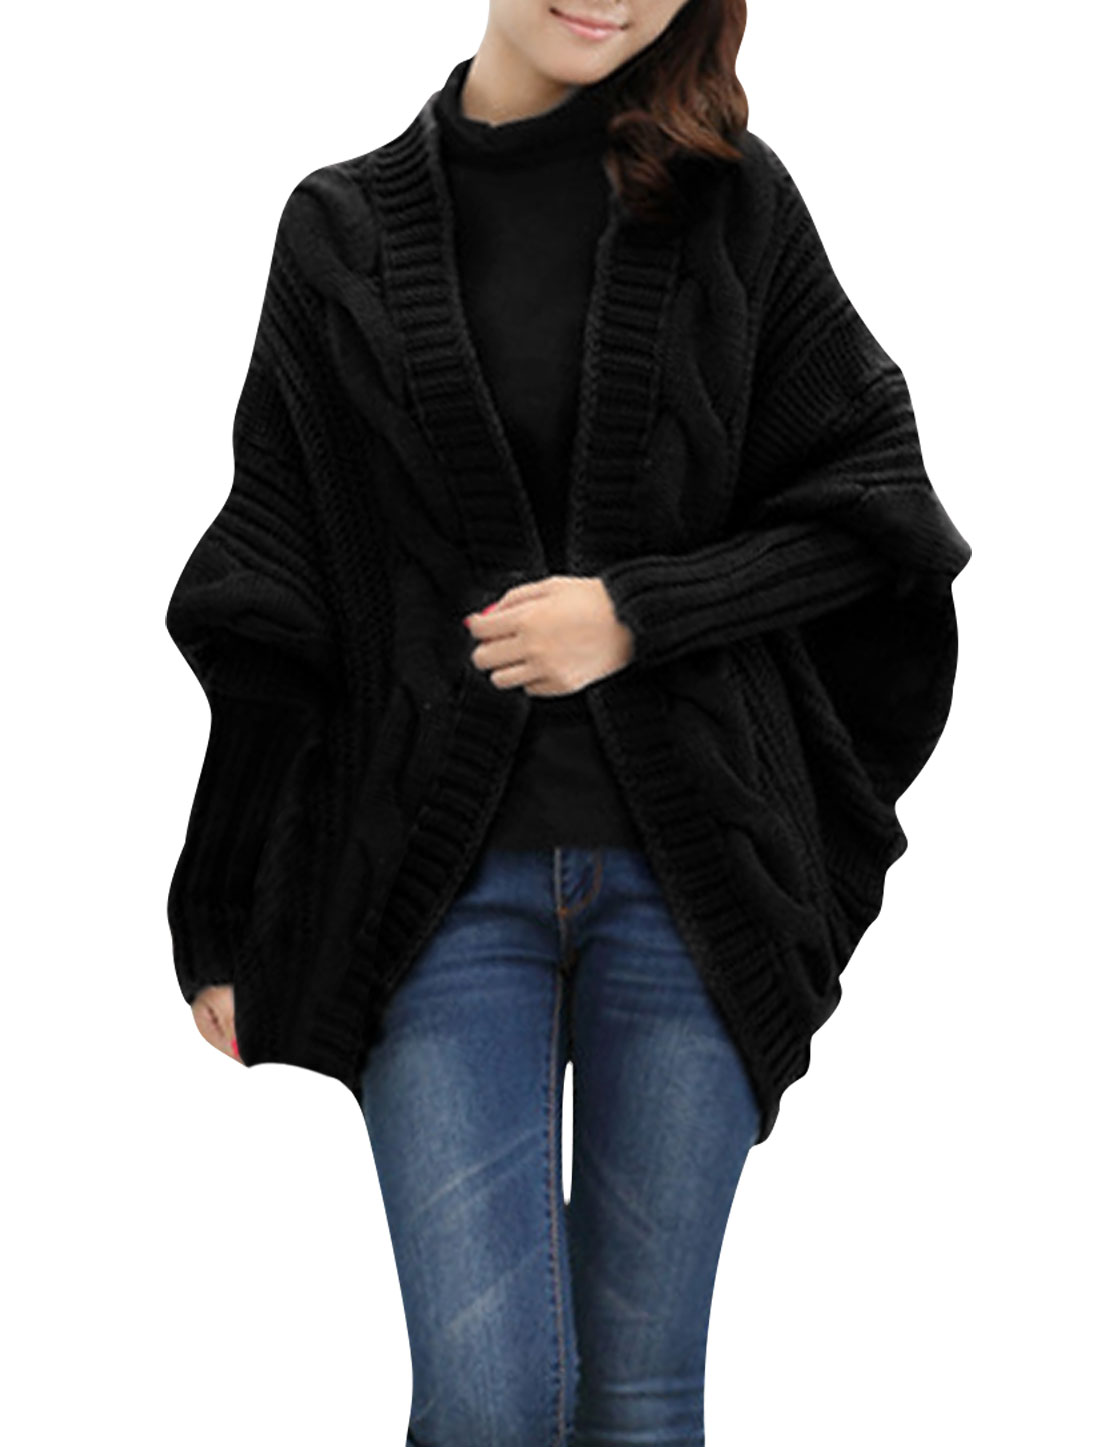 Ladies Black Batwing Sleeve Chunky Kintting Shell Shape Design Sweater S